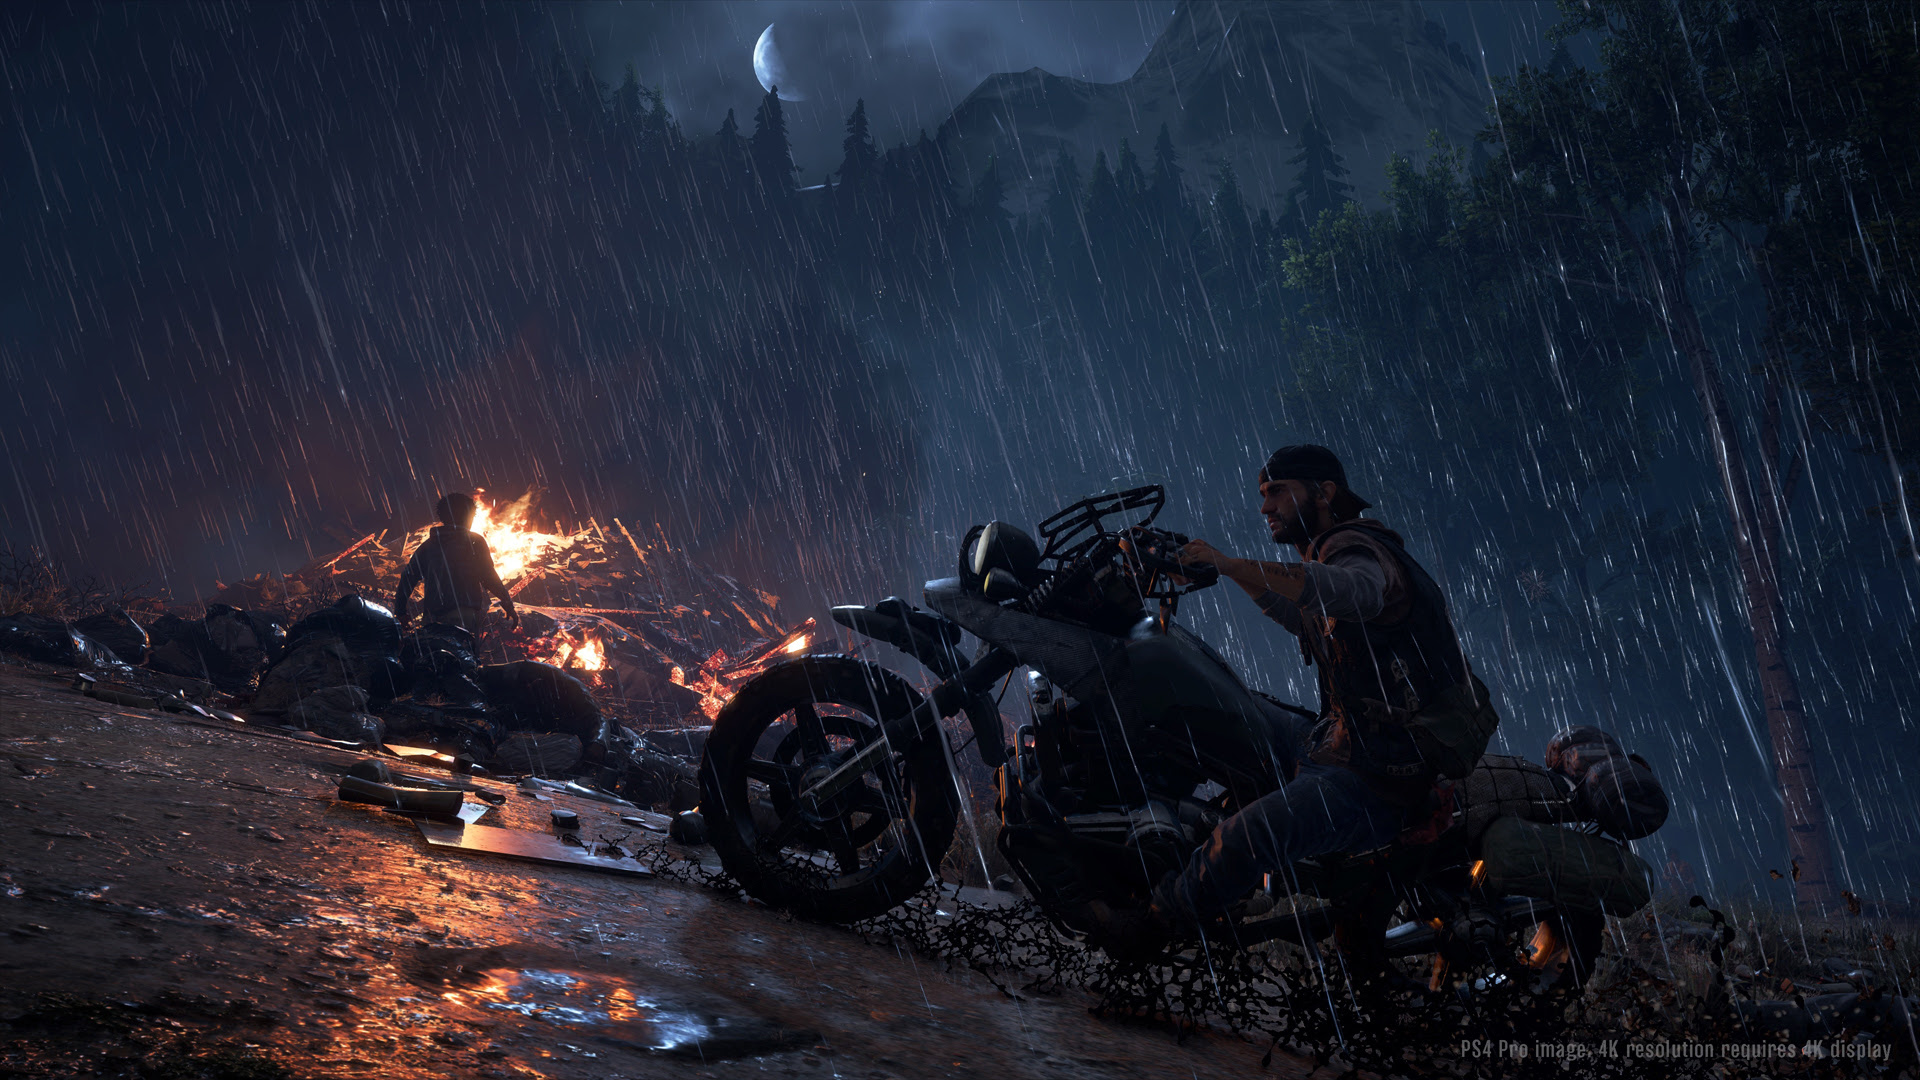 Days Gone's dynamic world sets it apart, but I need more convincing screenshot